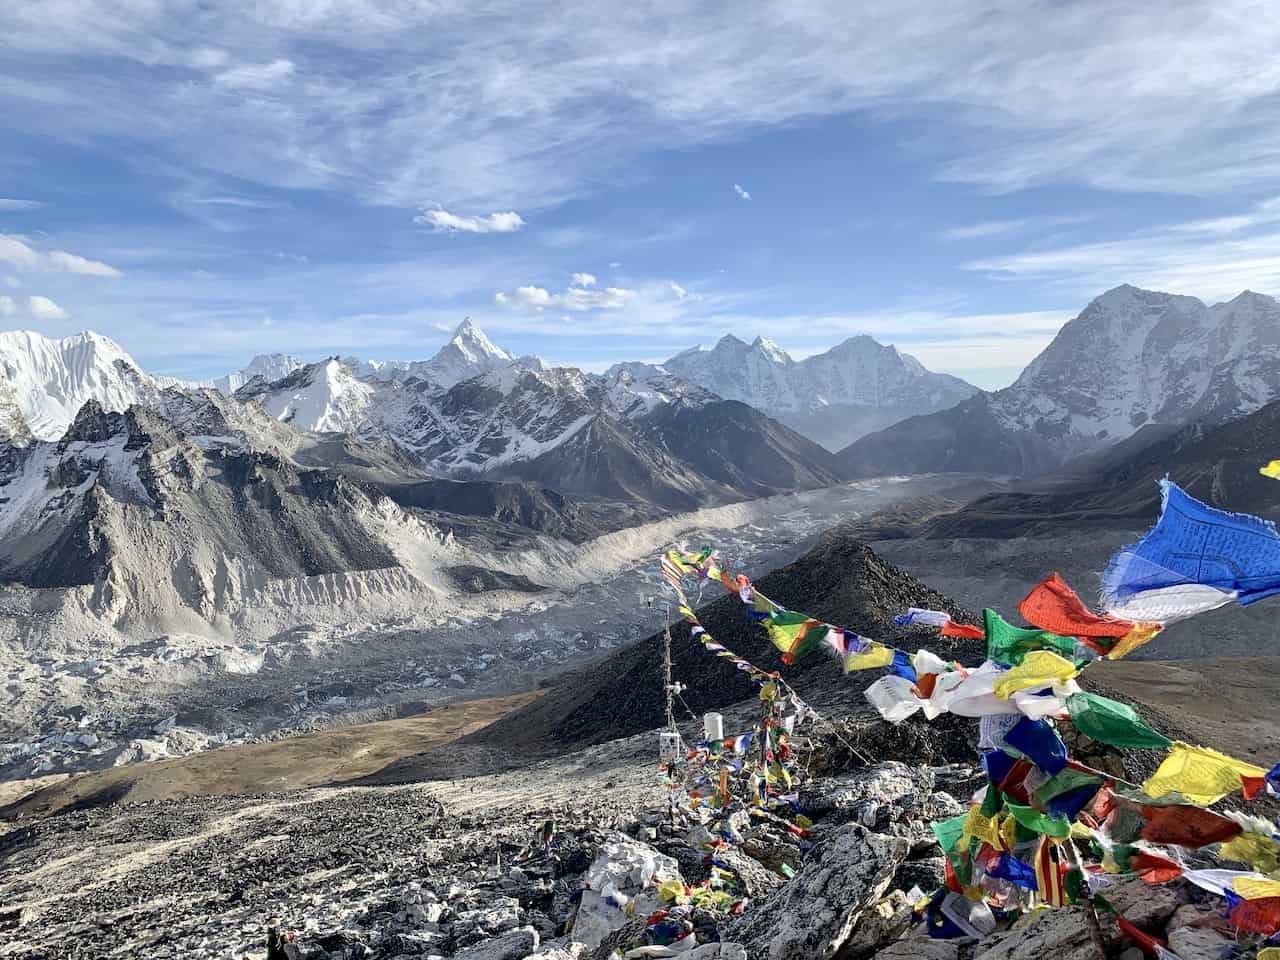 Kala Patthar Summit